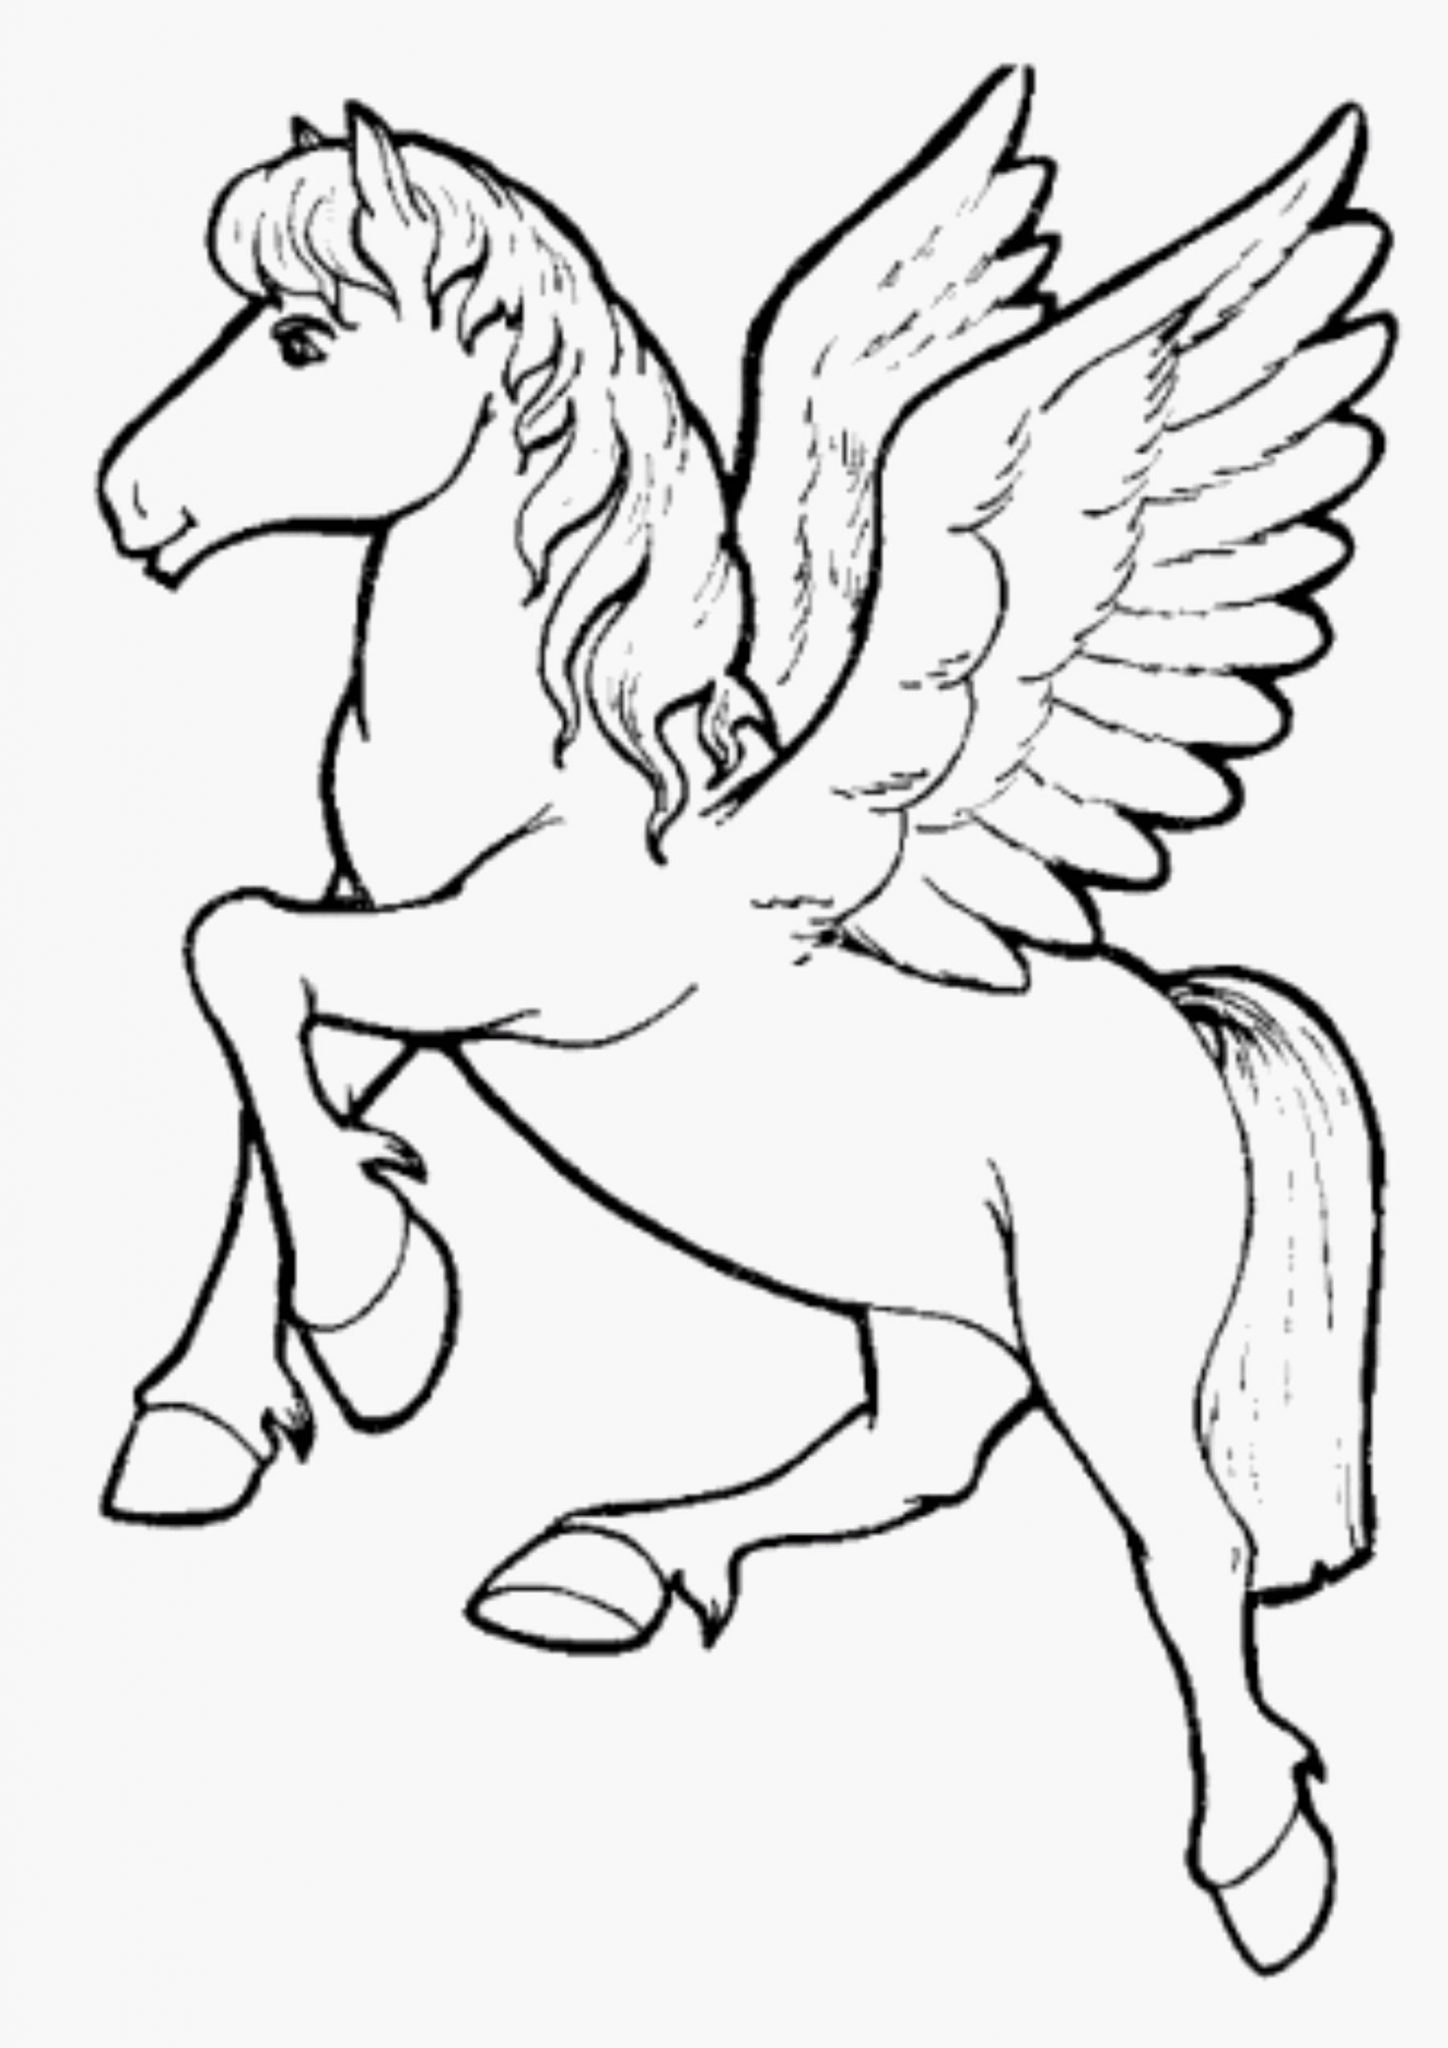 coloring pages of unicorns unicorn coloring page for kids stock illustration of pages coloring unicorns